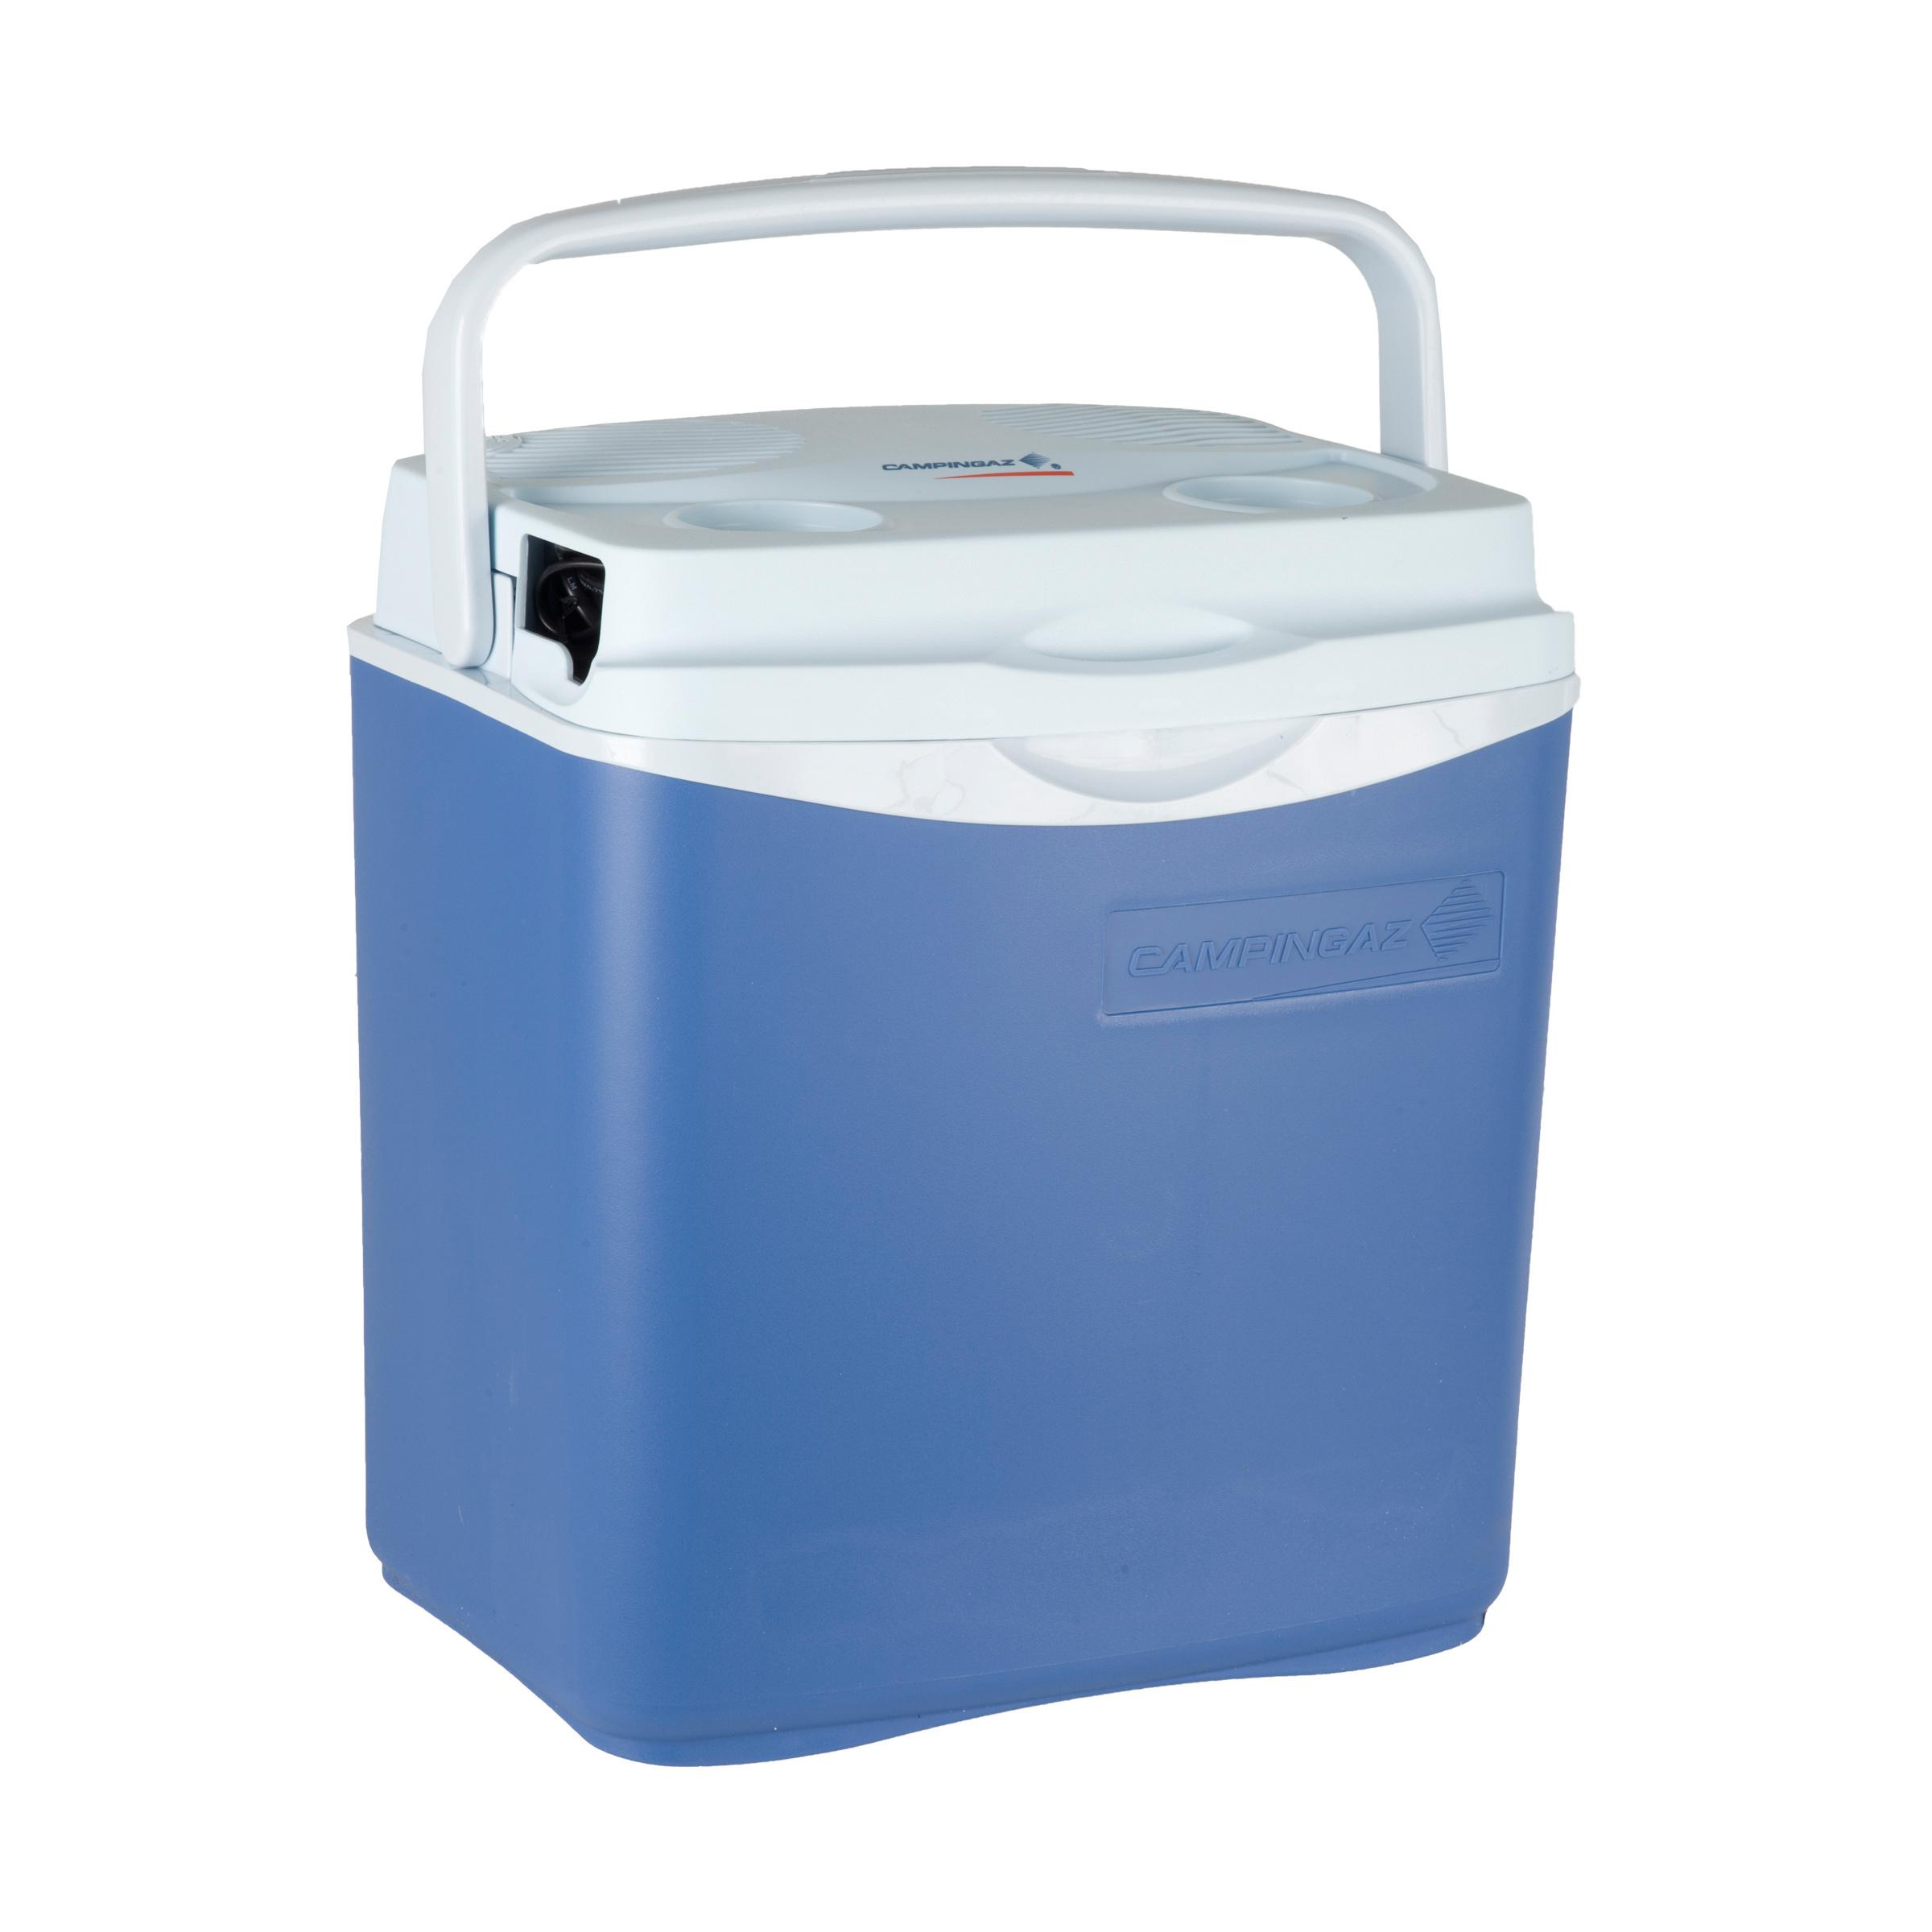 Cool Box cool boxes & picnic coolers | millets